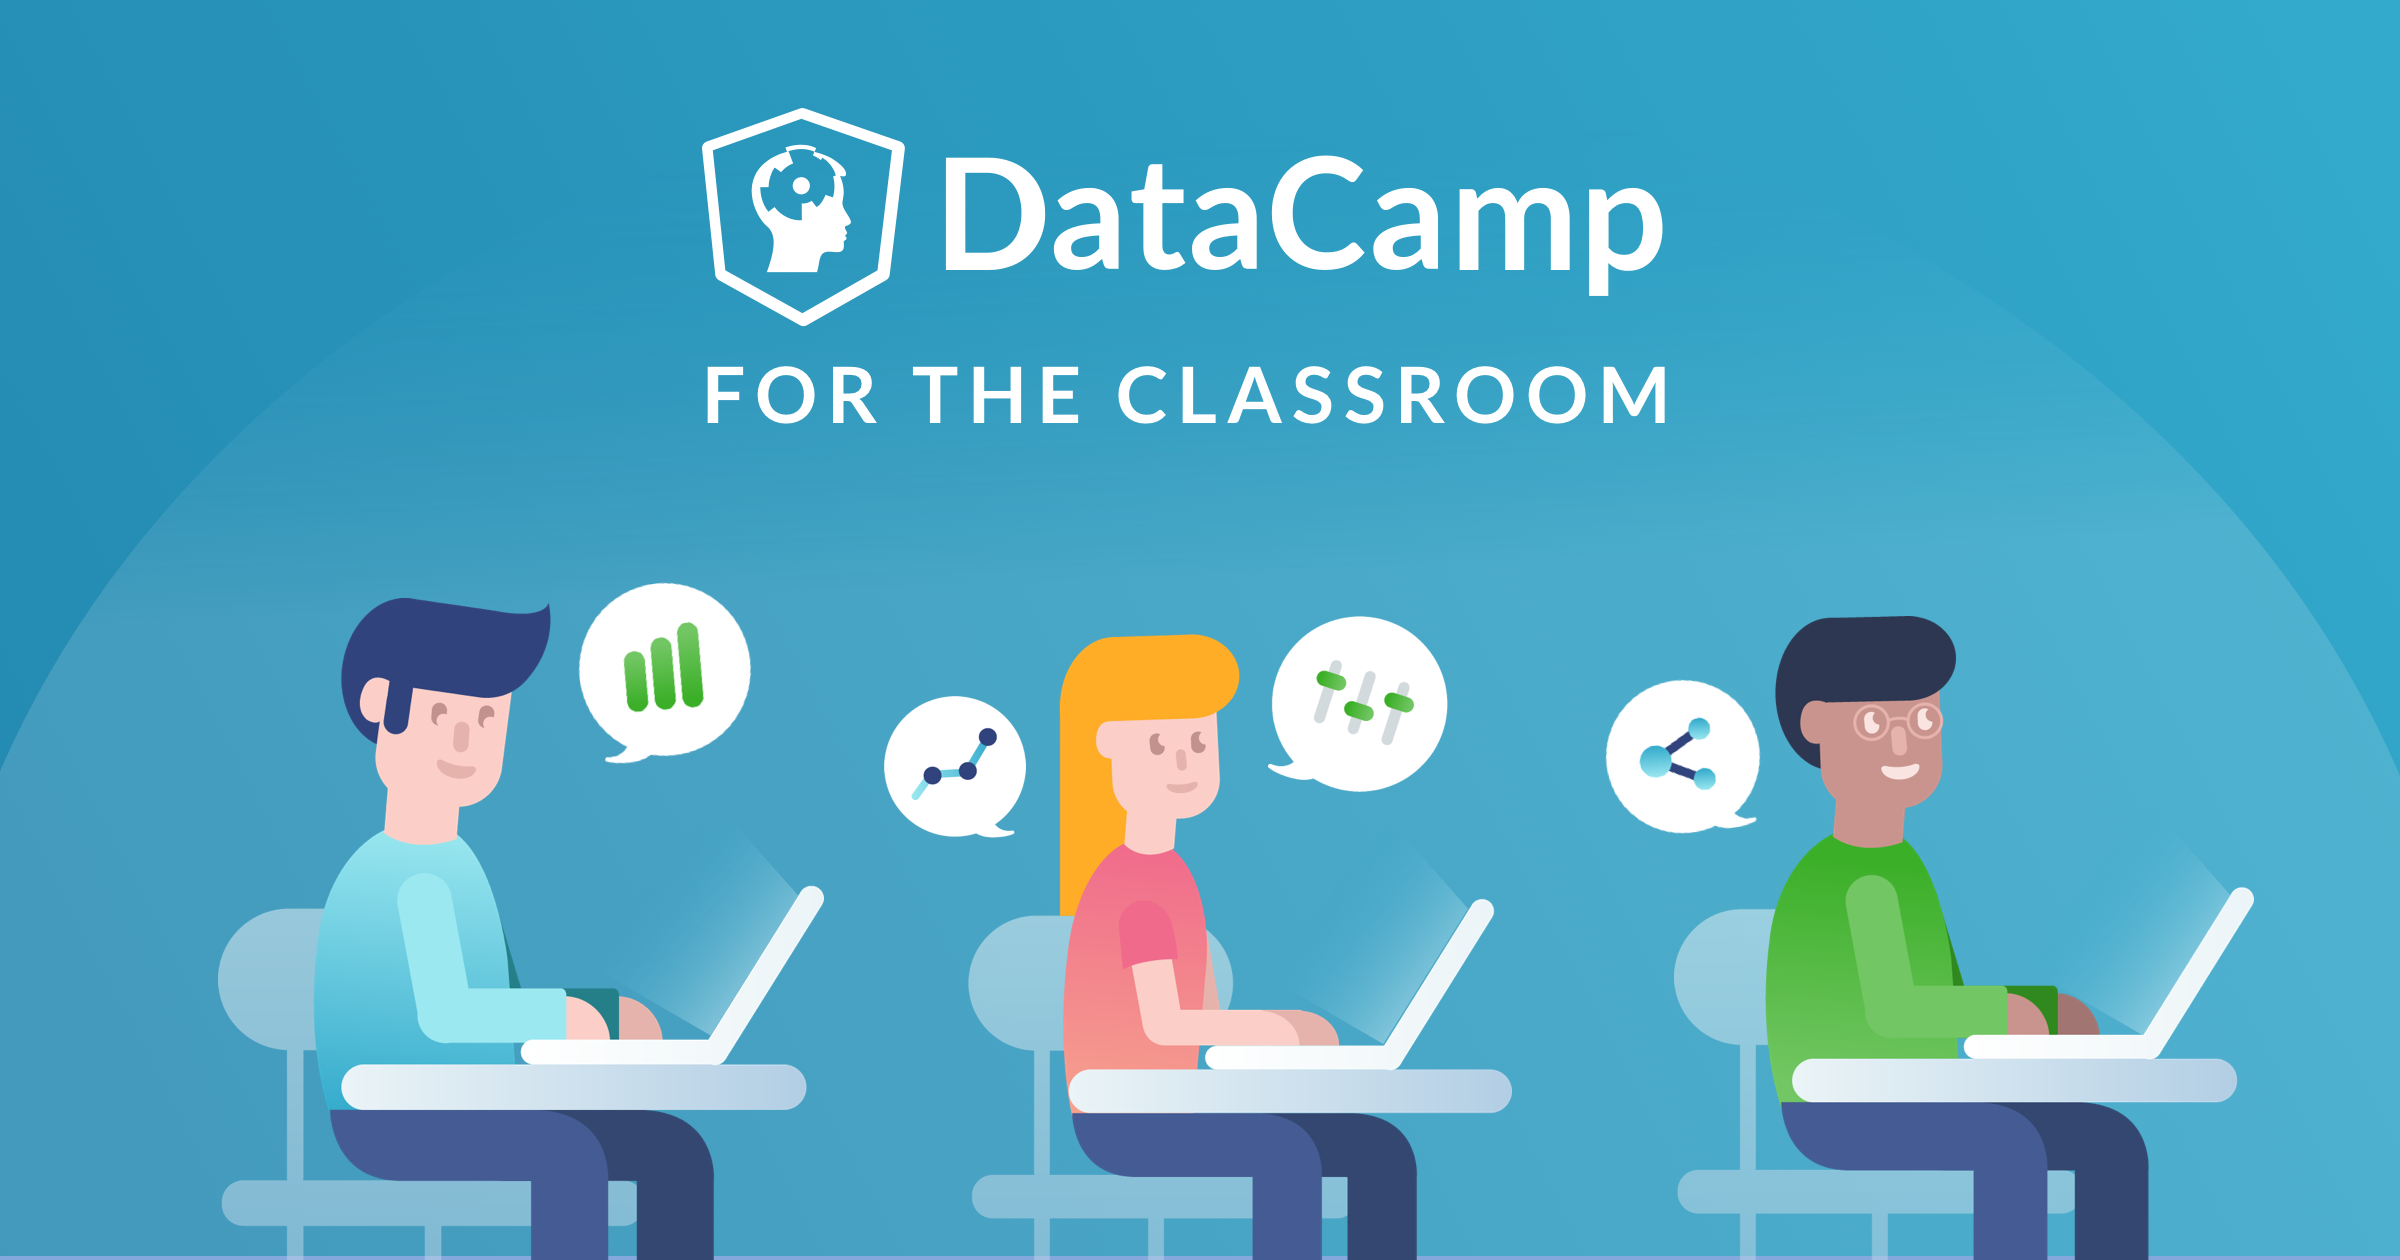 This class is supported by DataCamp, the most intuitive learning platform for data science and analytics. Learn anytime, anywhere and become an expert in R, Python, SQL, and more. DataCamp's learn-by-doing methodology combines short expert videos and hands-on-the-keyboard exercises to help learners retain knowledge. DataCamp offers 325+ courses by expert instructors on topics such as importing data, data visualization, and machine learning. They're constantly expanding their curriculum to keep up with the latest technology trends and to provide the best learning experience for all skill levels. Join over 5 million learners around the world and close your skills gap.